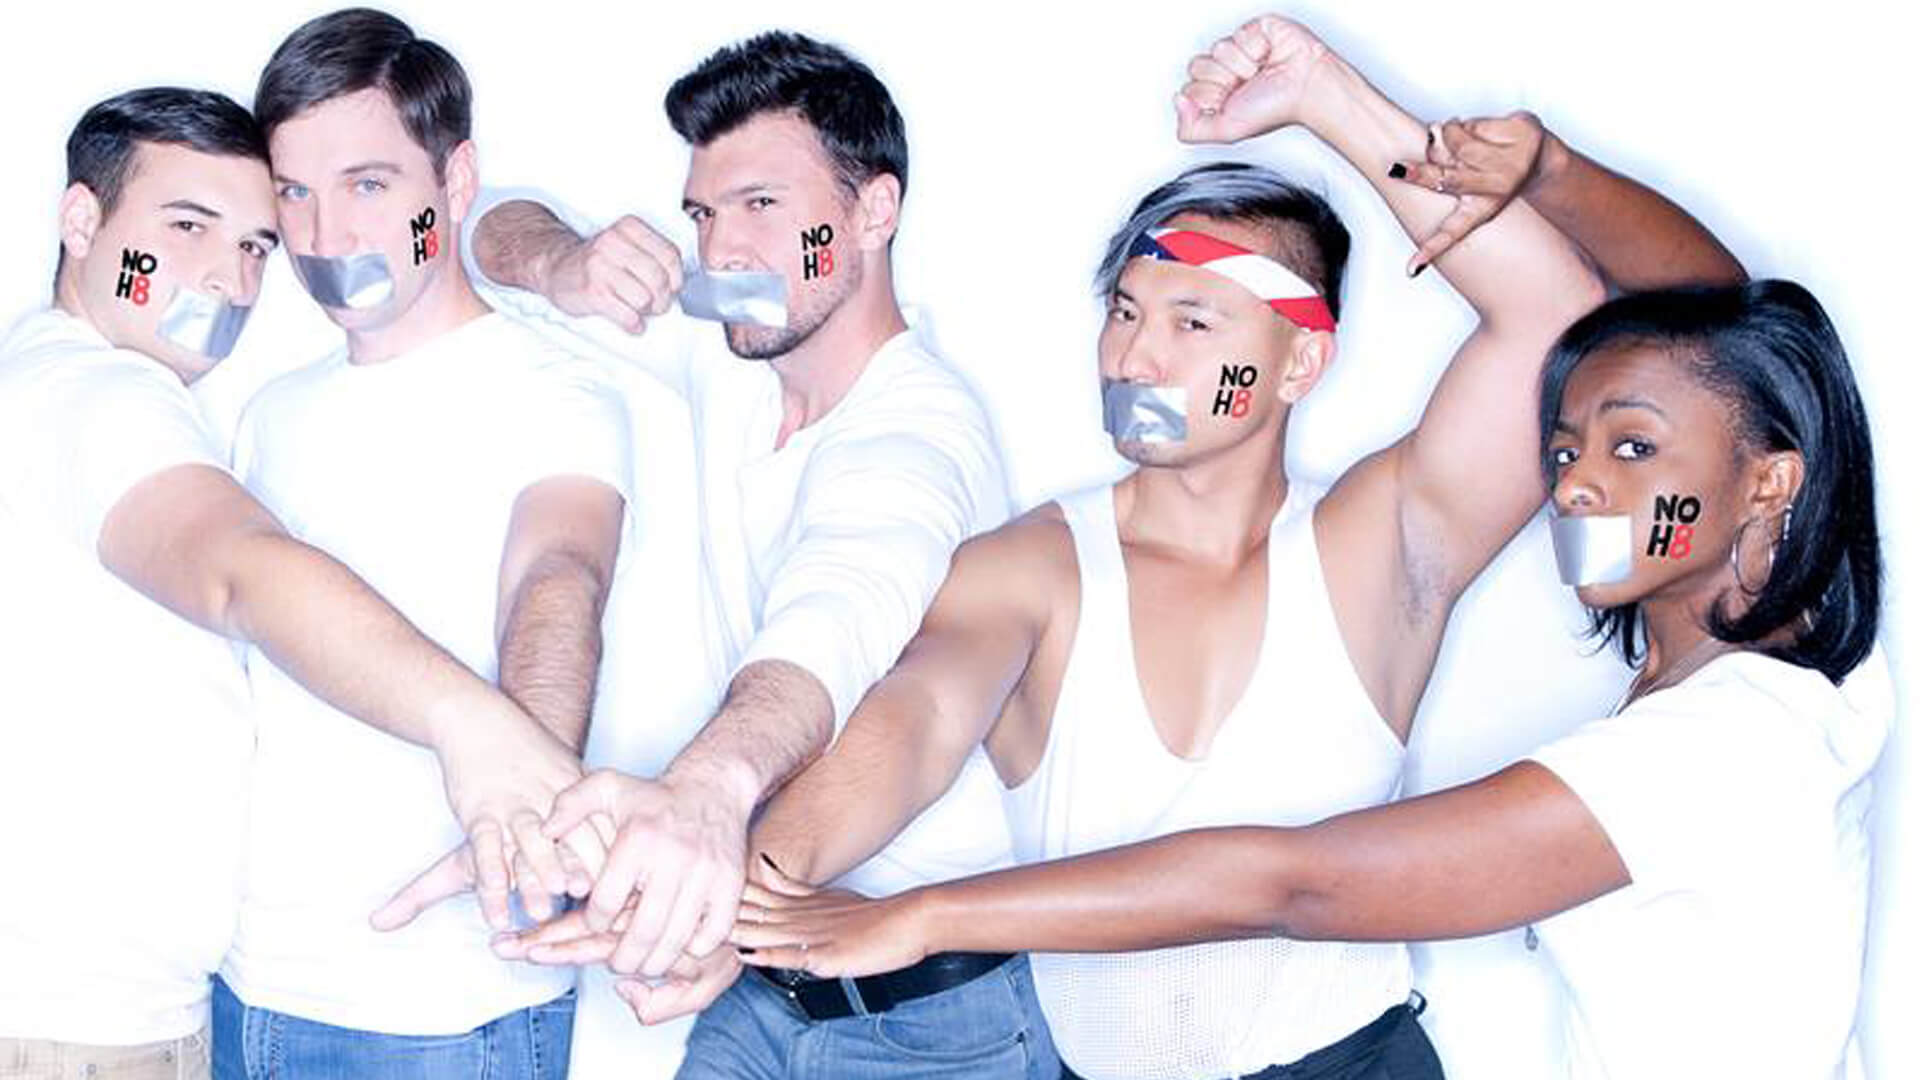 NOH8 Photoshoot at The Center